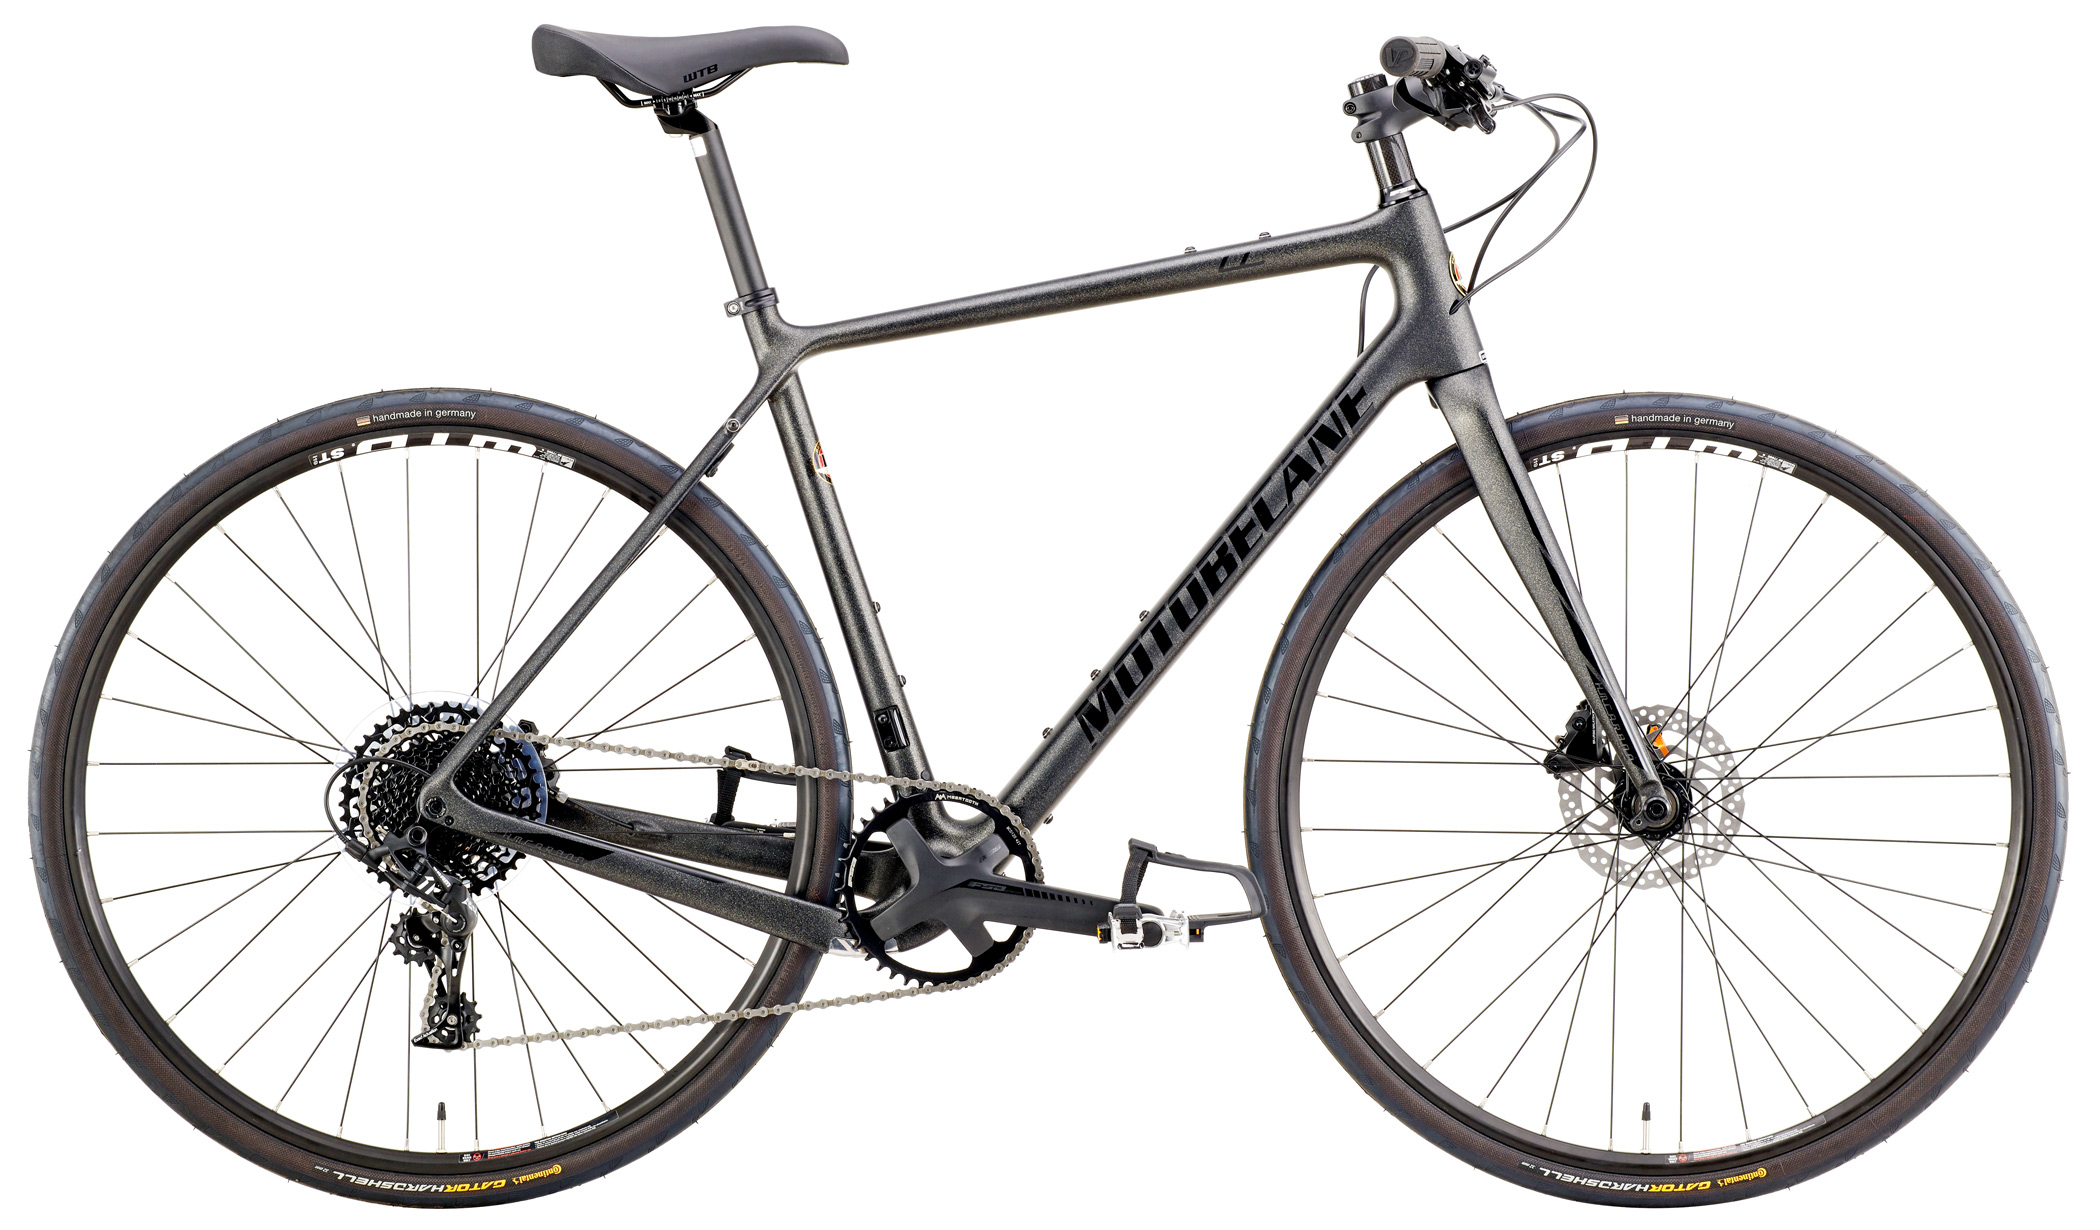 Save Up to 60% Off Disc Brake Gravel Flat Bar Road Bikes